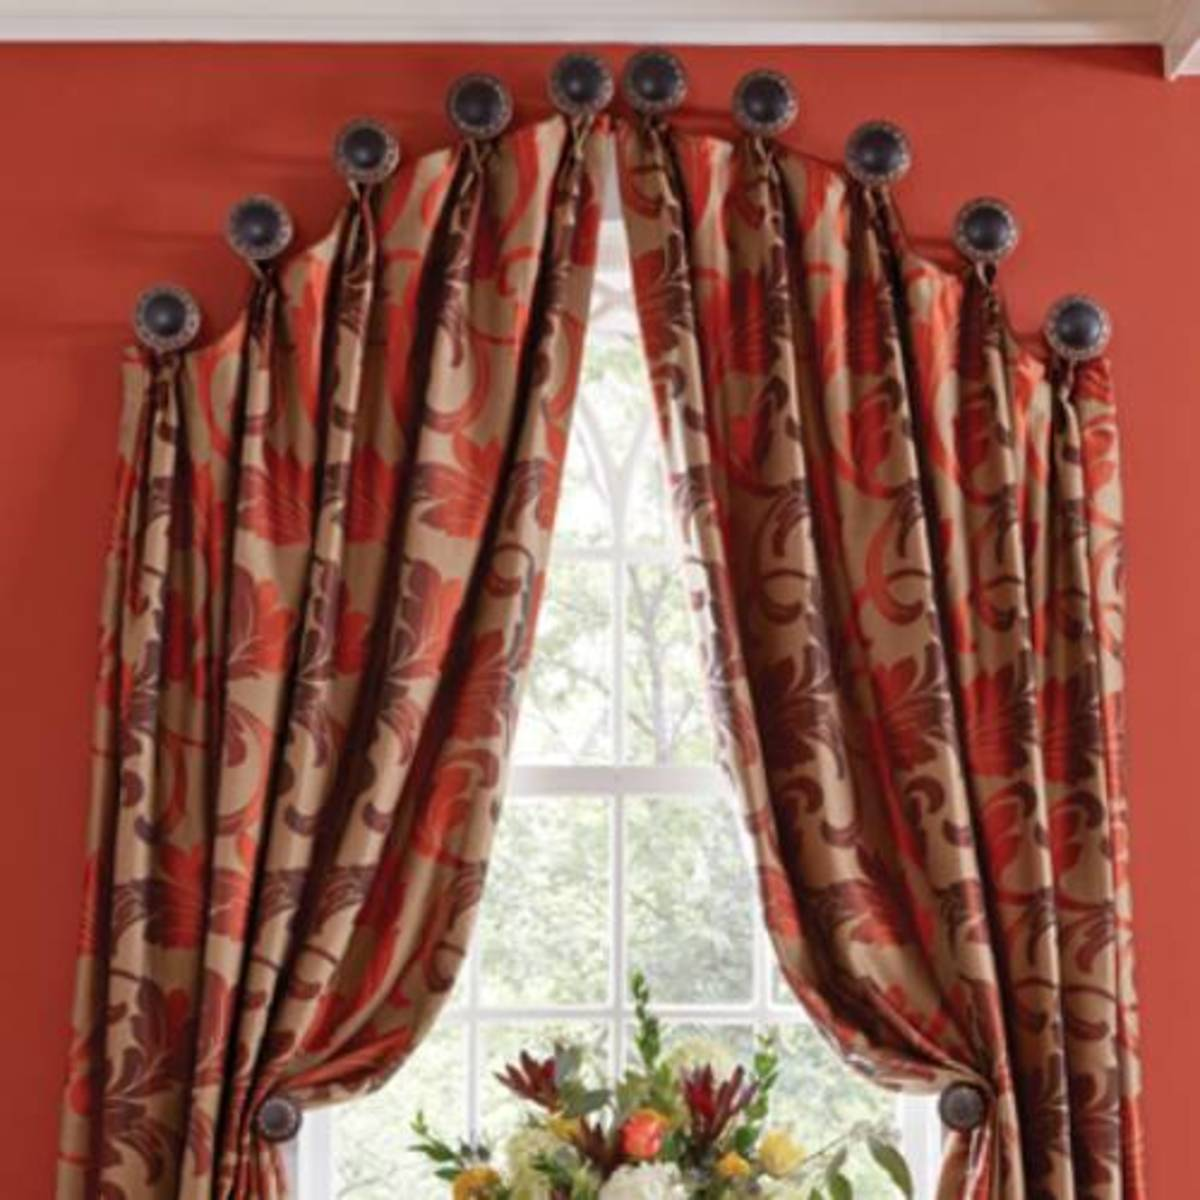 Best Curtain Solutions For Arched Windows Dengarden Home And Garden